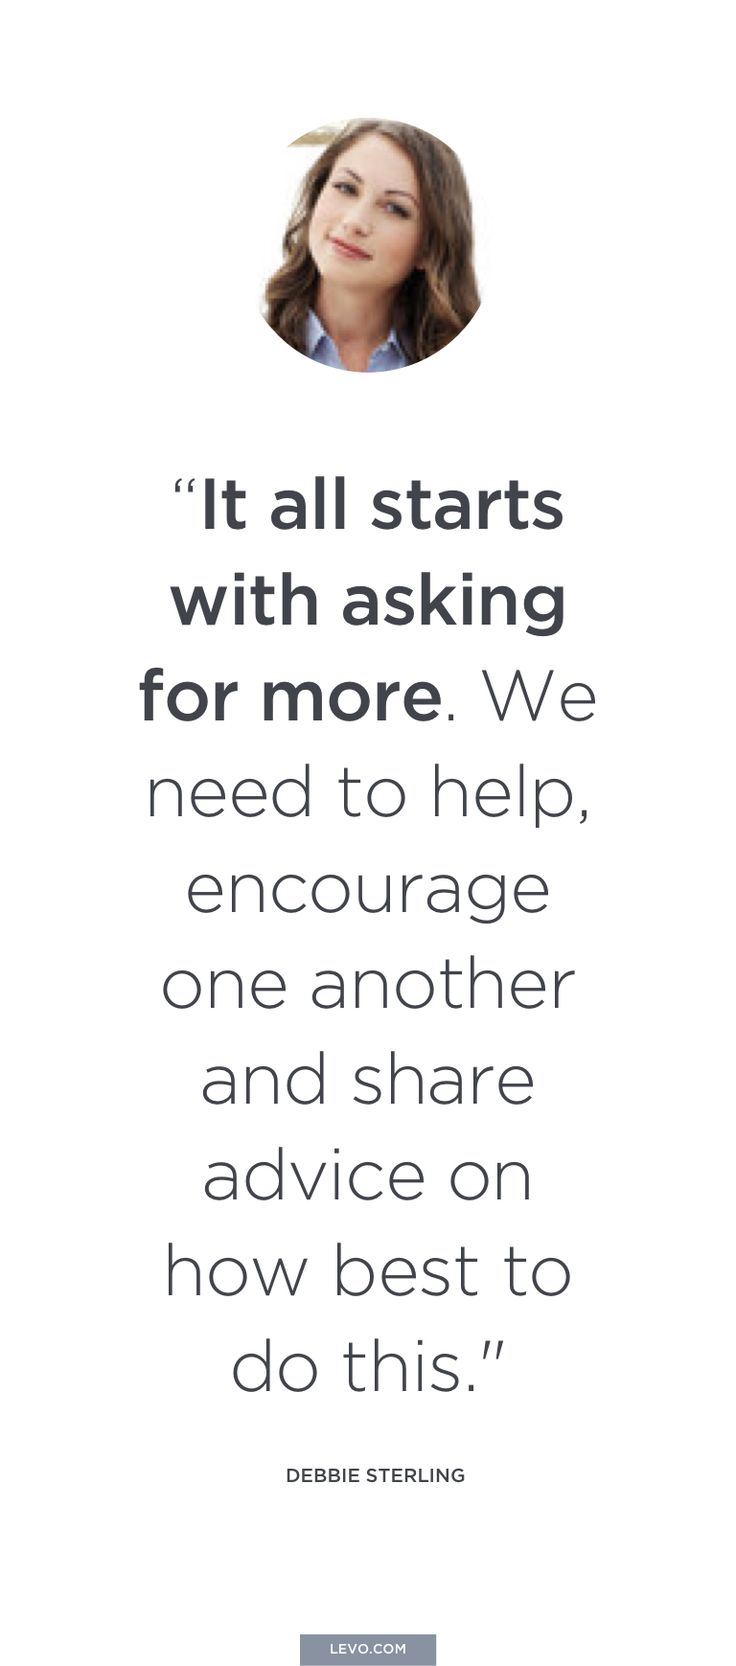 Debbie Sterling - Quotes to Inspire you to #Ask4More on Equal Pay Day - www.levo.com/ask4more